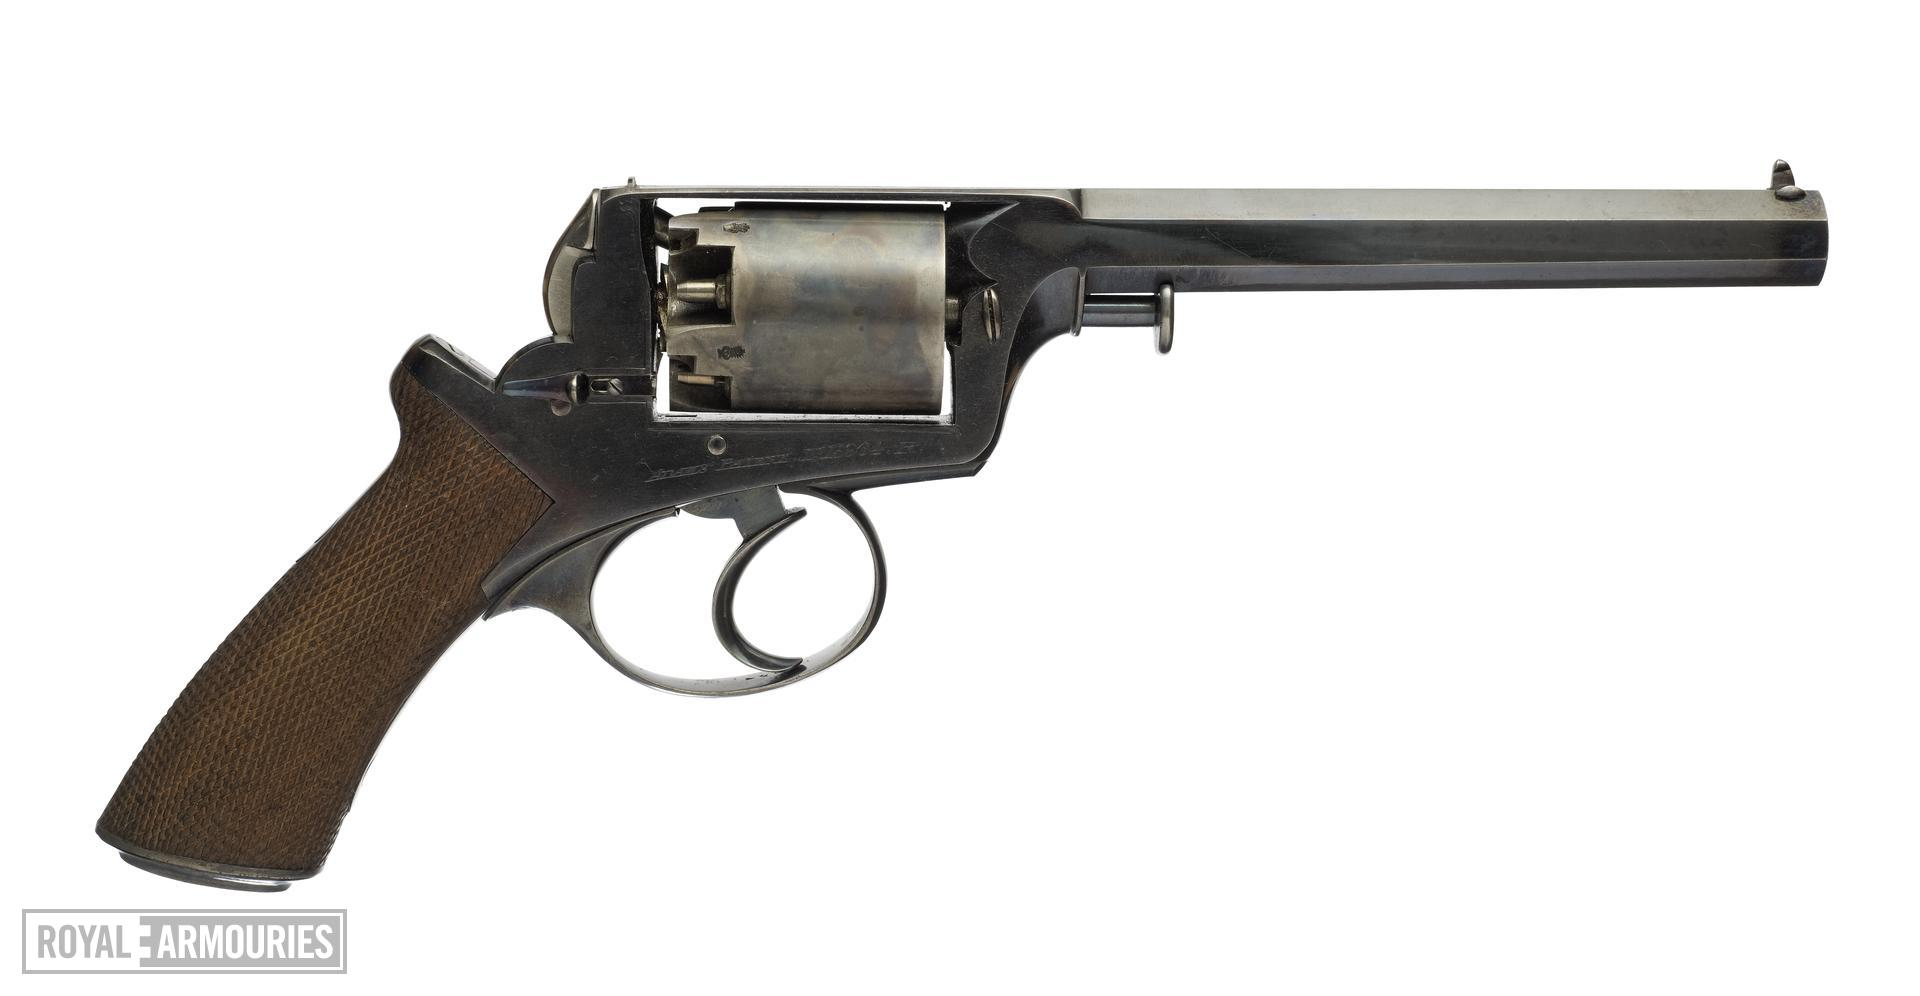 Percussion five-shot revolver - Adams Model 1851 Patent number 13964R